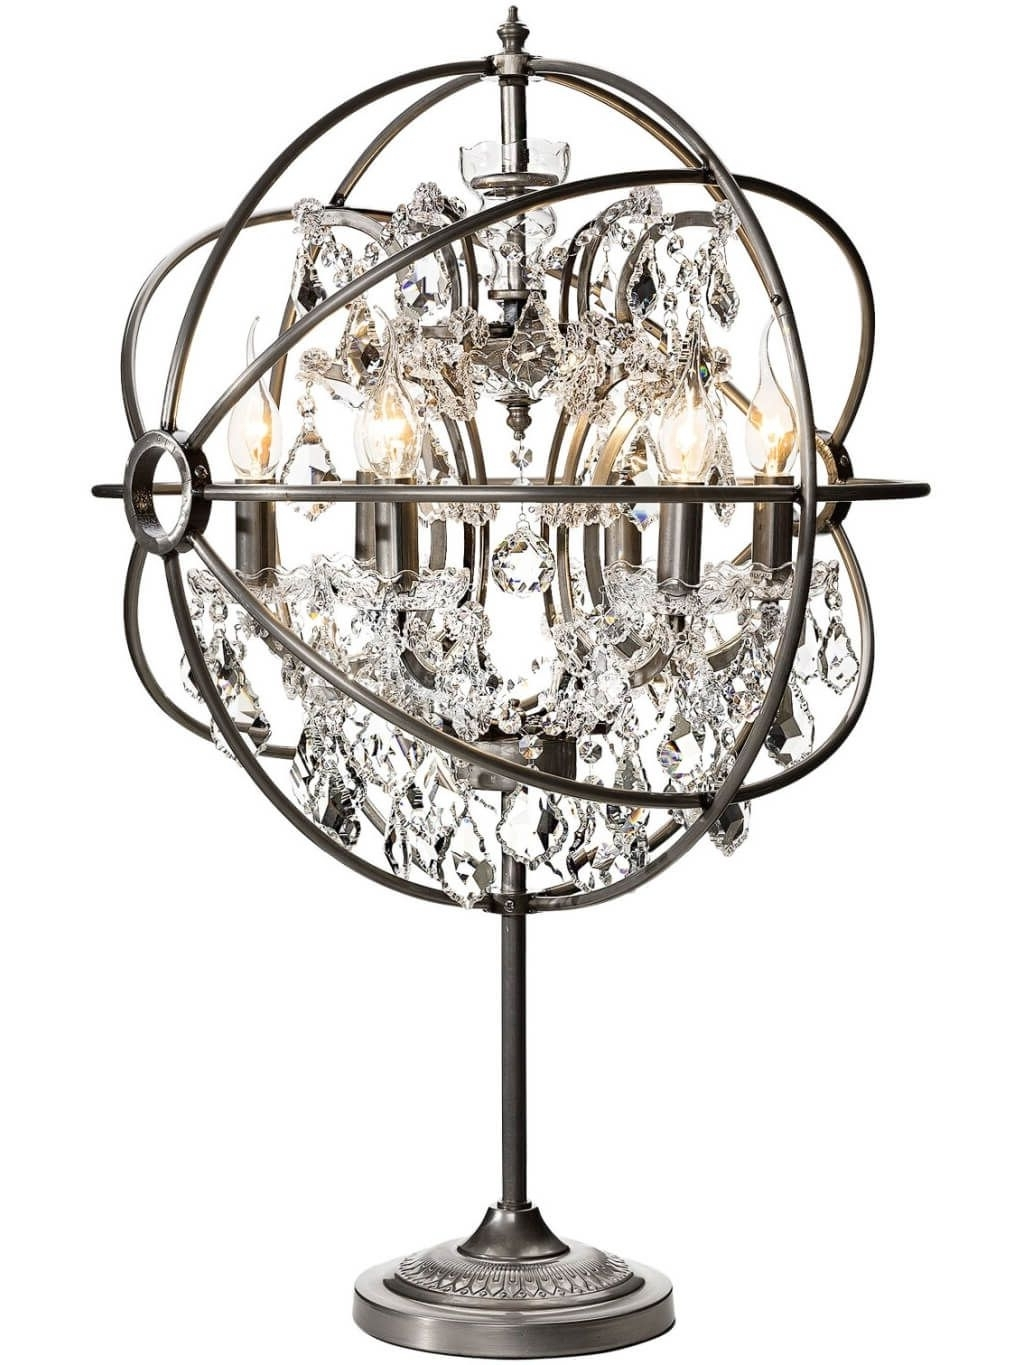 Small Chandelier Table Lamps Throughout Popular Lighting: Enticing Small Chandelier Table Lamp With Aluminum Base (View 16 of 20)